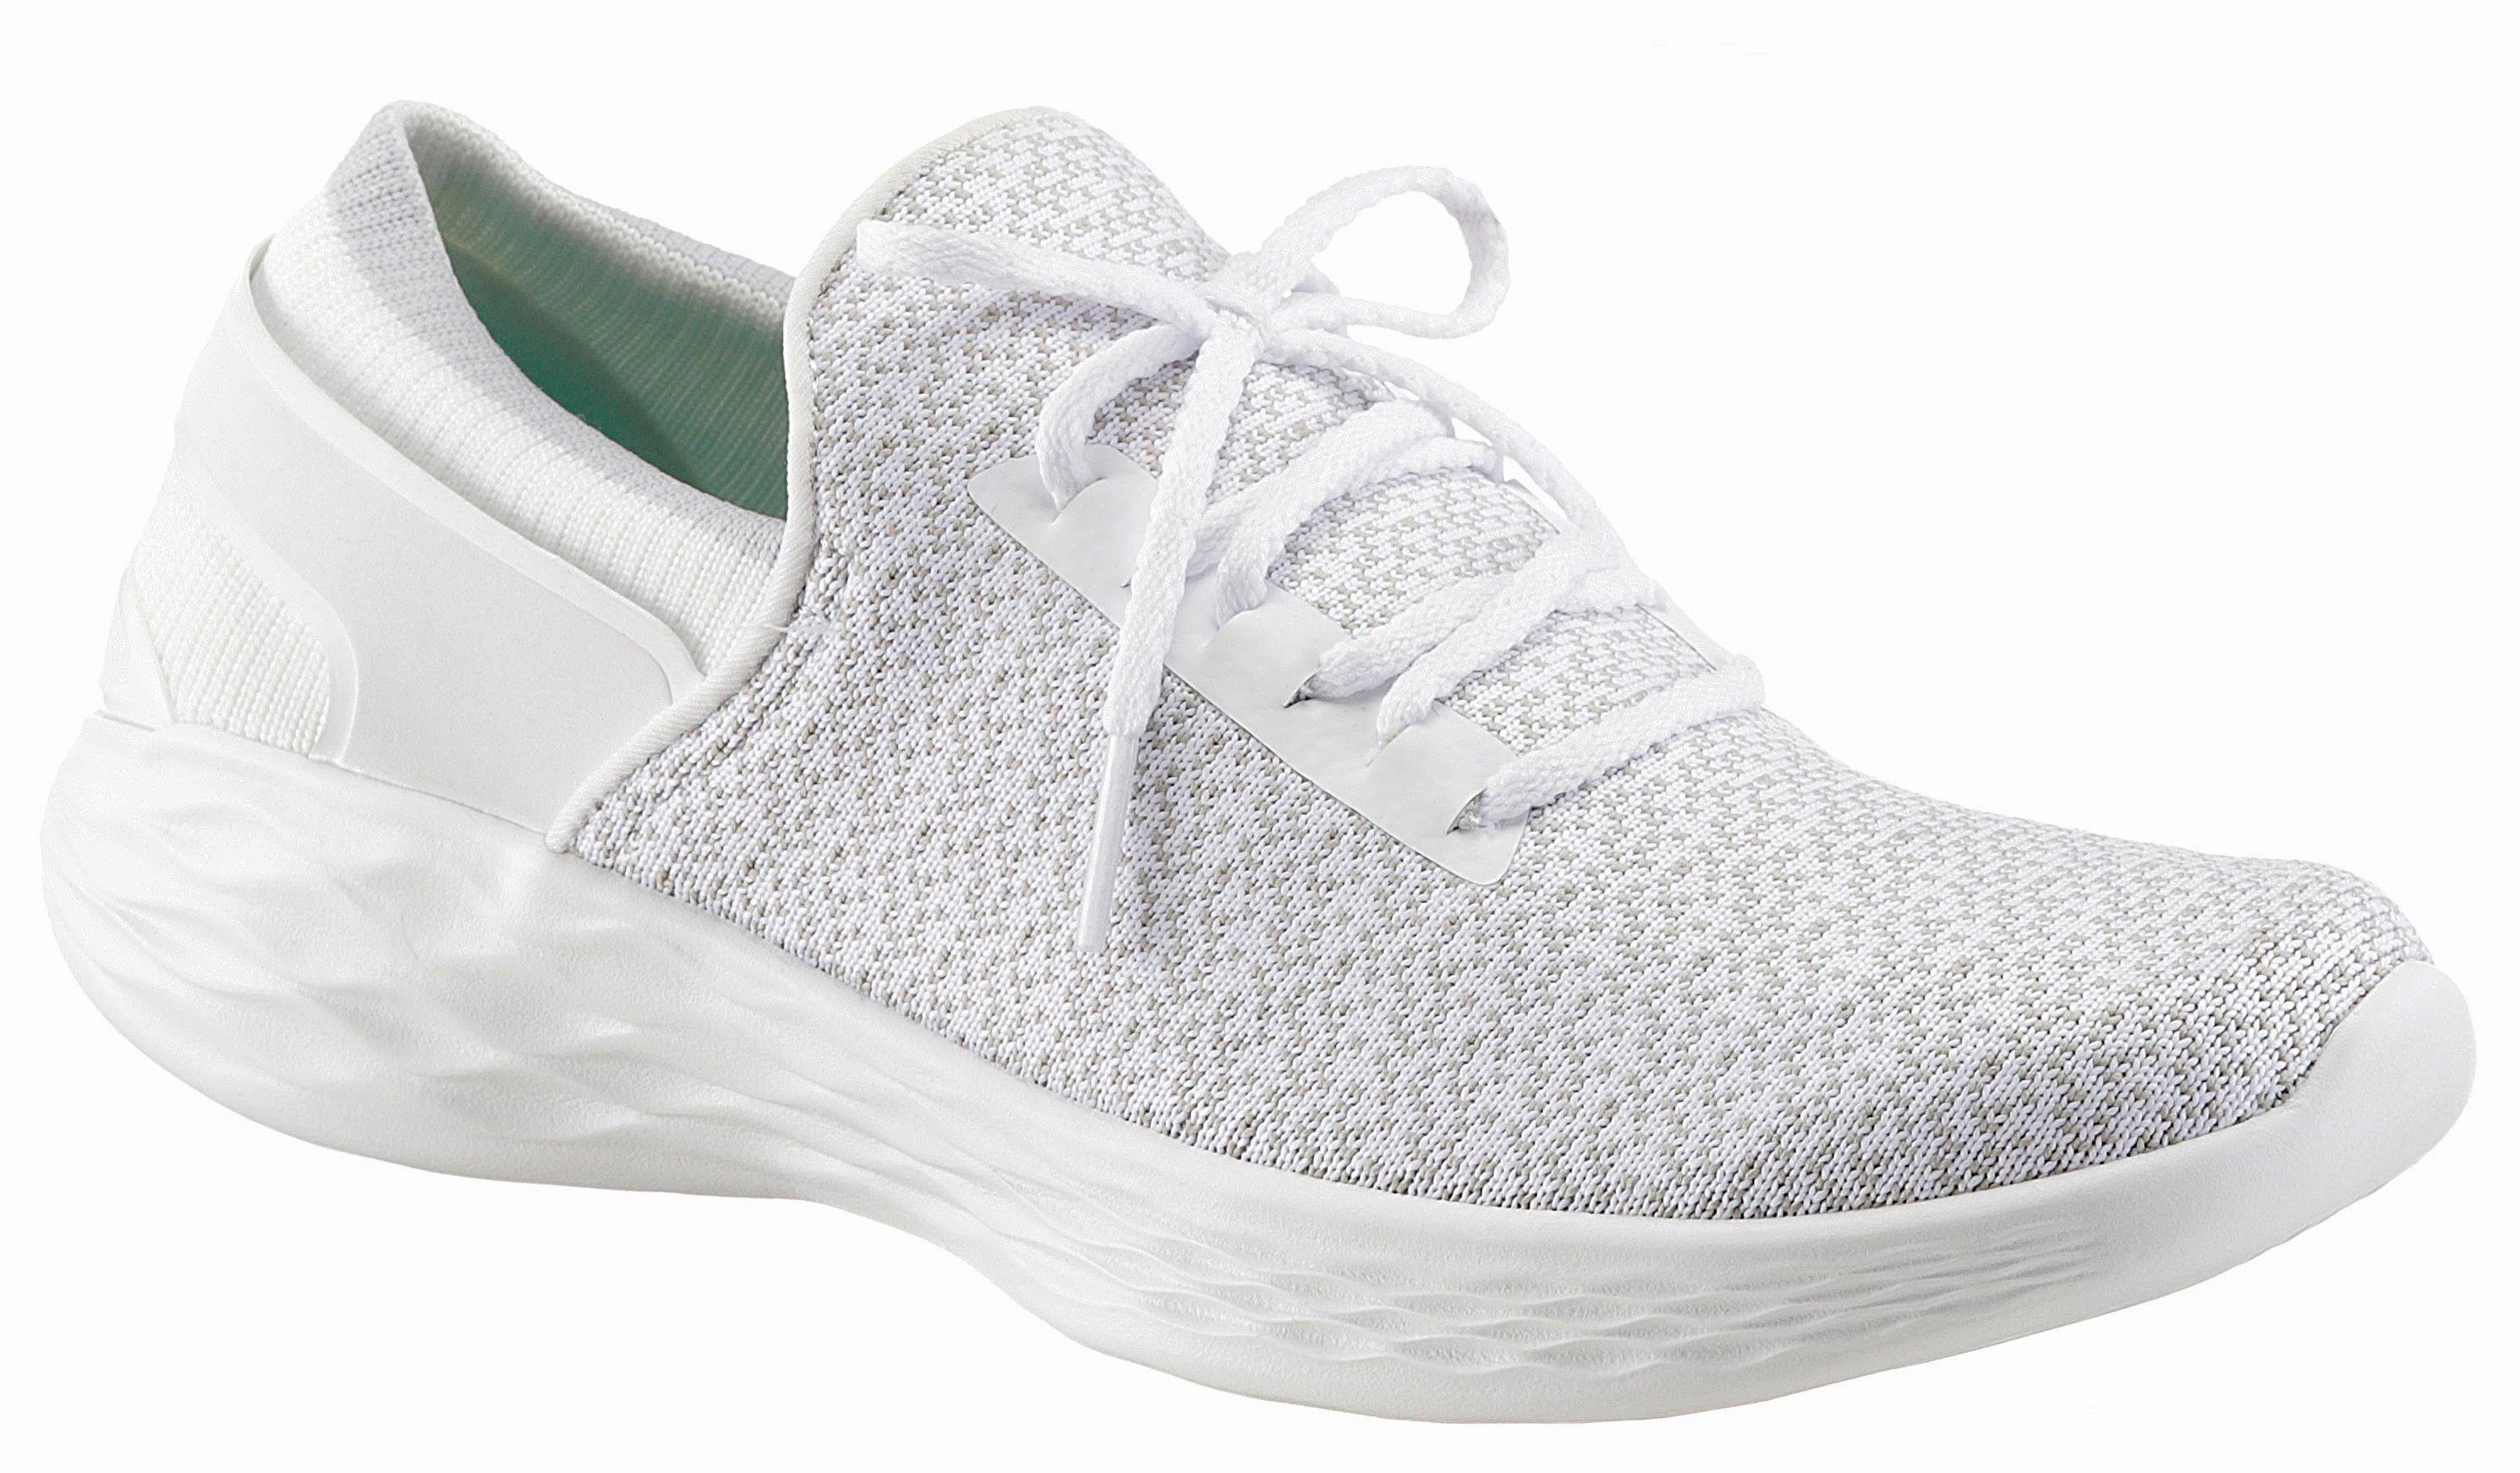 SKECHERS PERFORMANCE »YOU-Inspire« Sneaker, mit GoGa Max-Technology, beige, 39 39